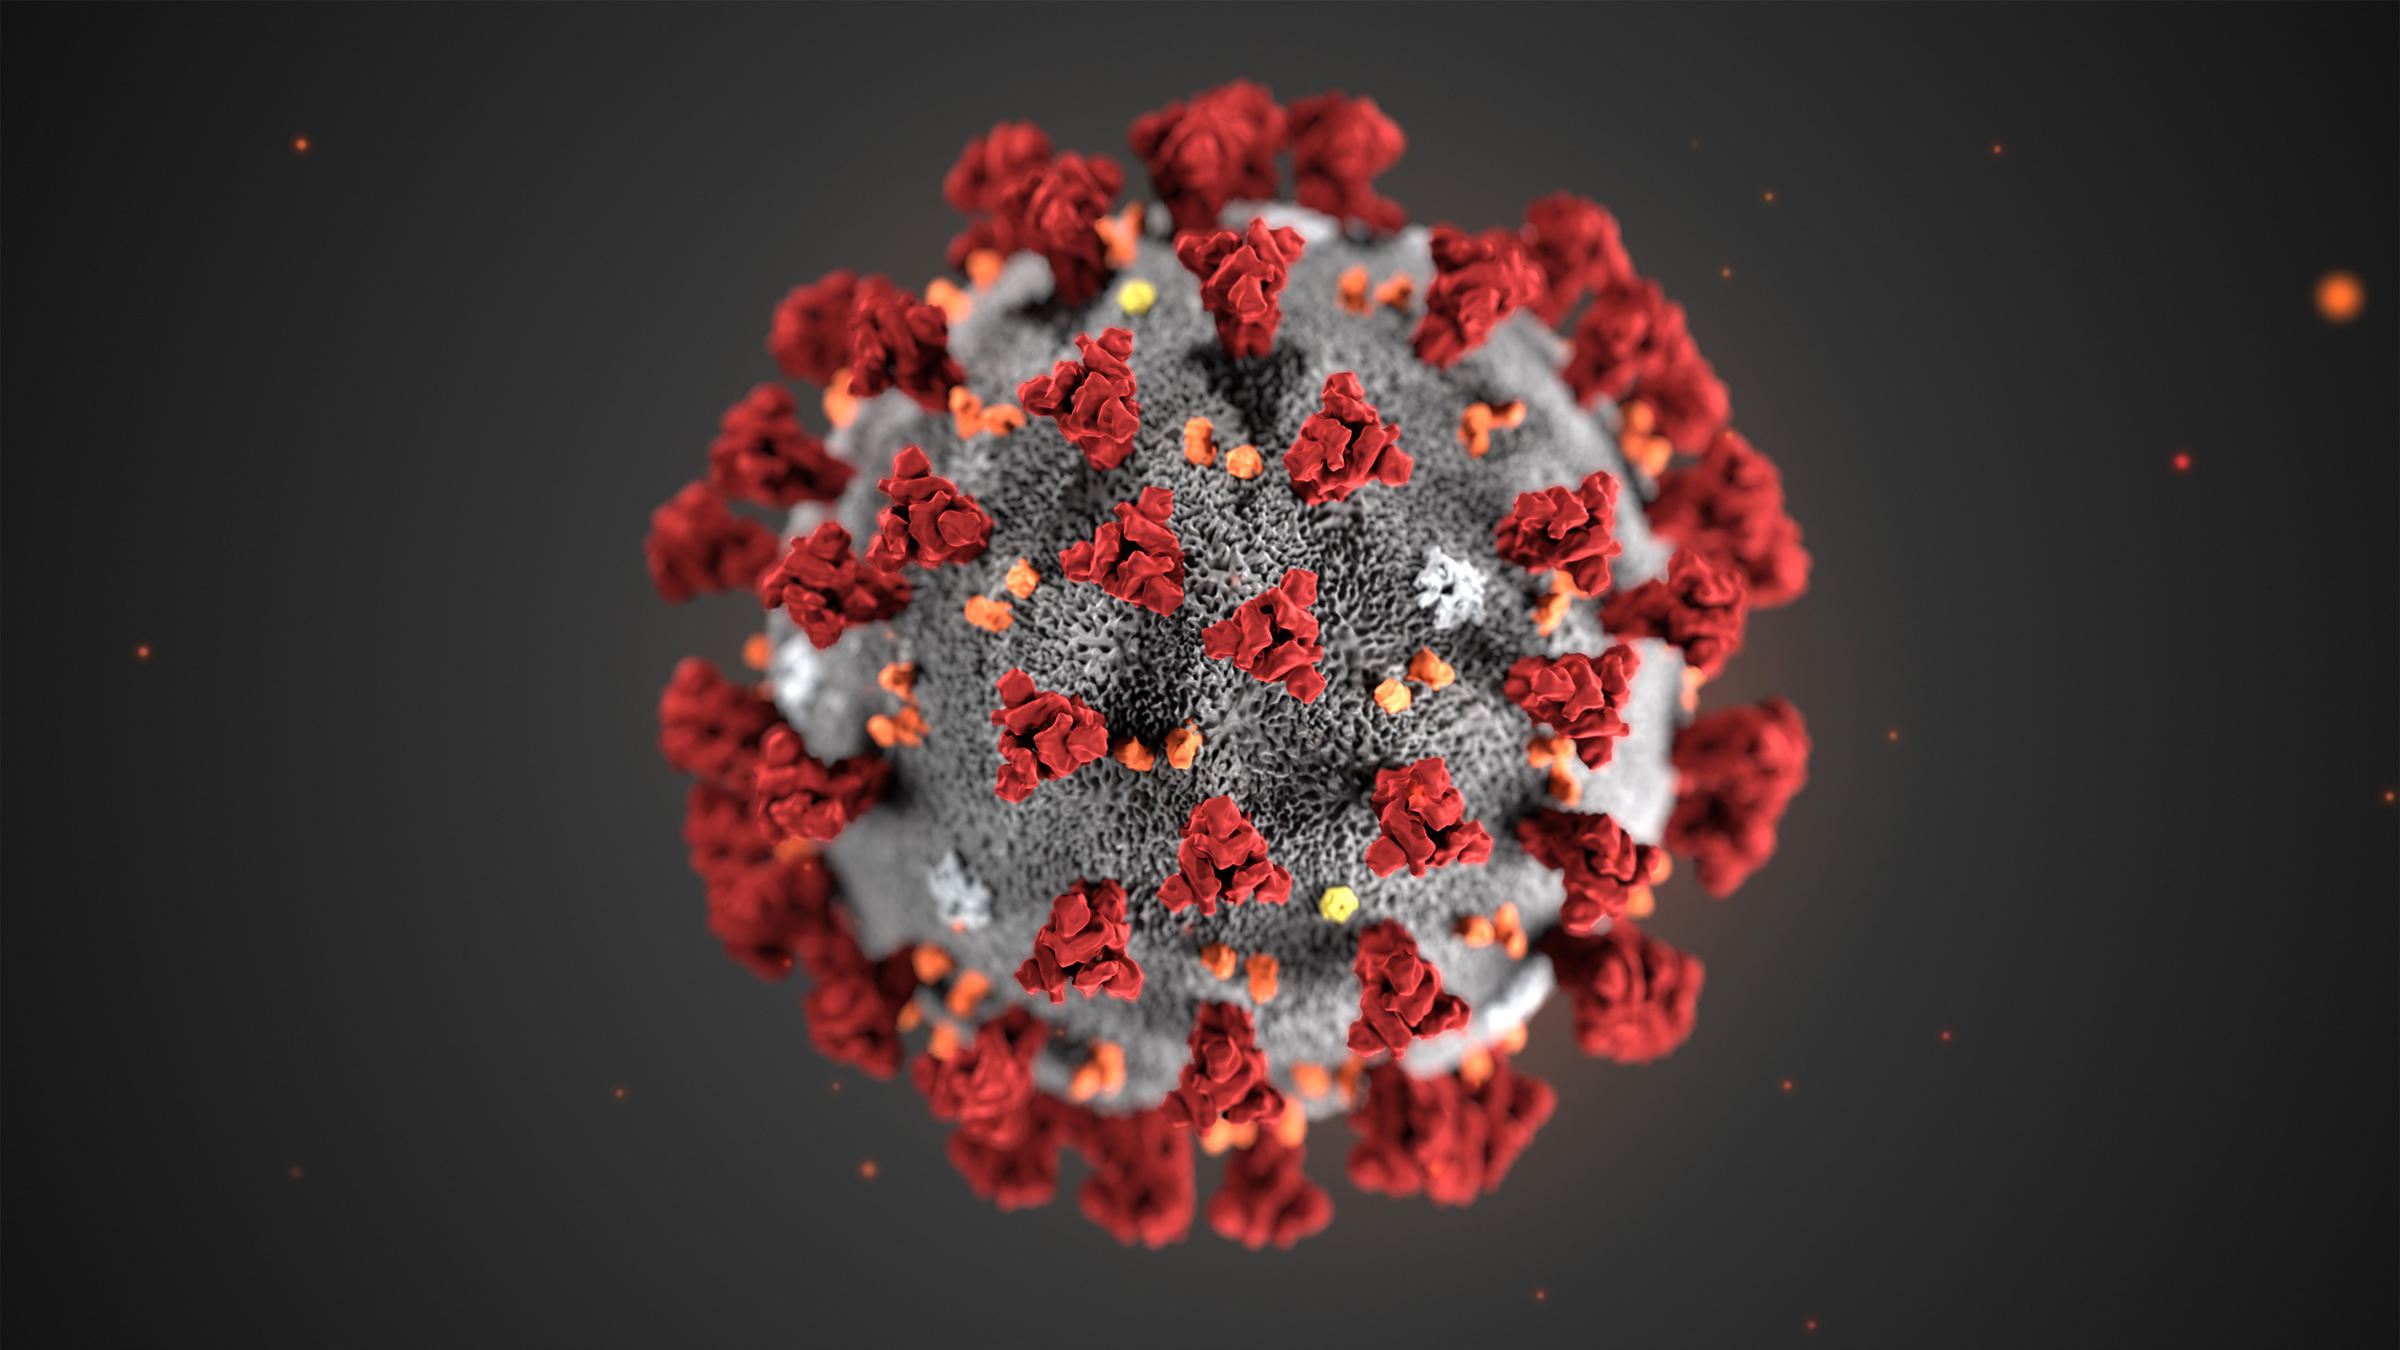 'Time is everything' as world braces for spread of virus